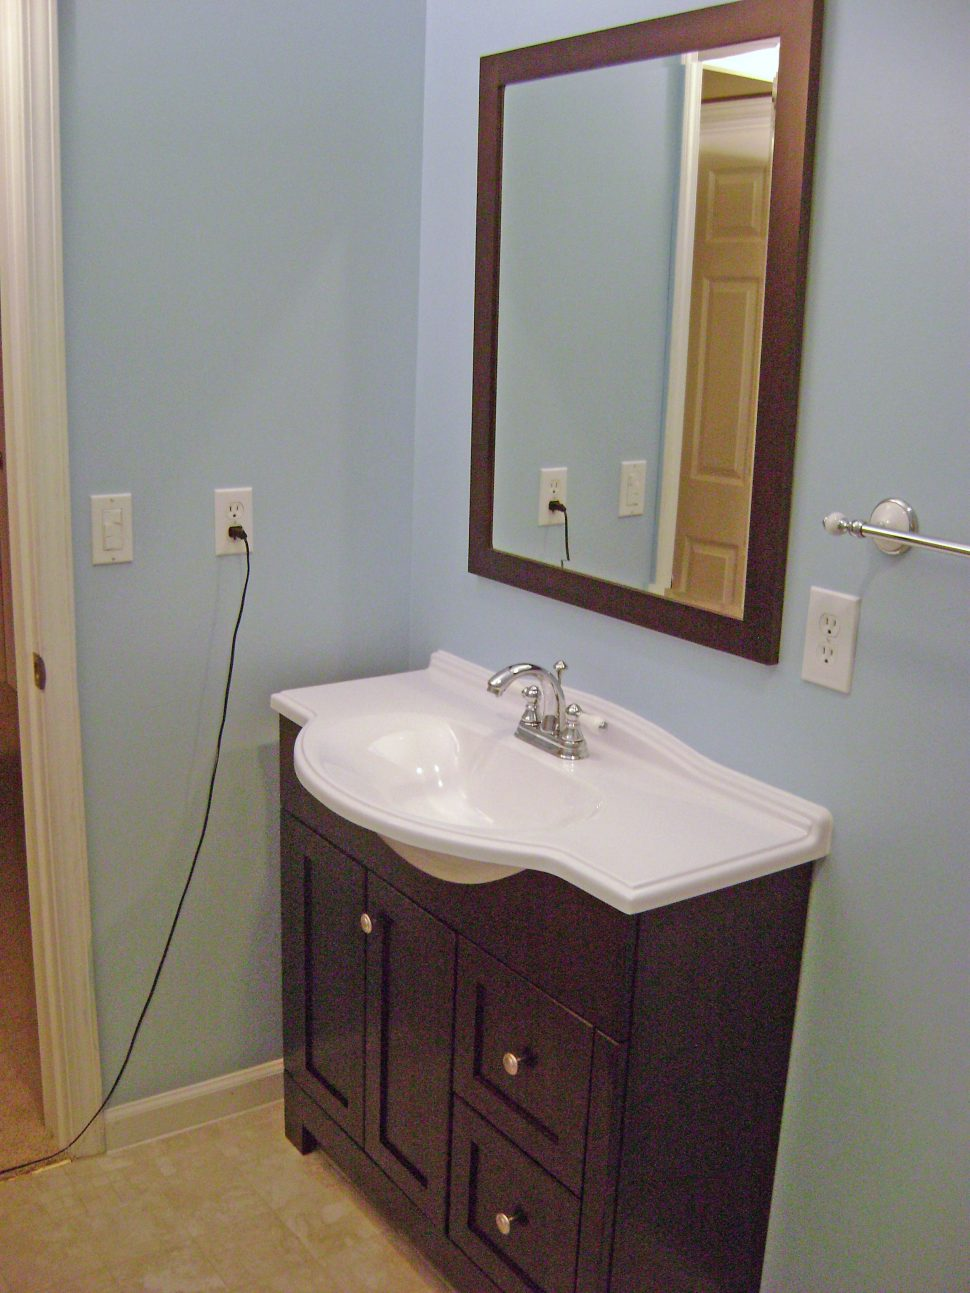 Bathroom Vanity Cabinets Home Depot | Small Bathroom Vanities Home Depot | Vanity Home Depot